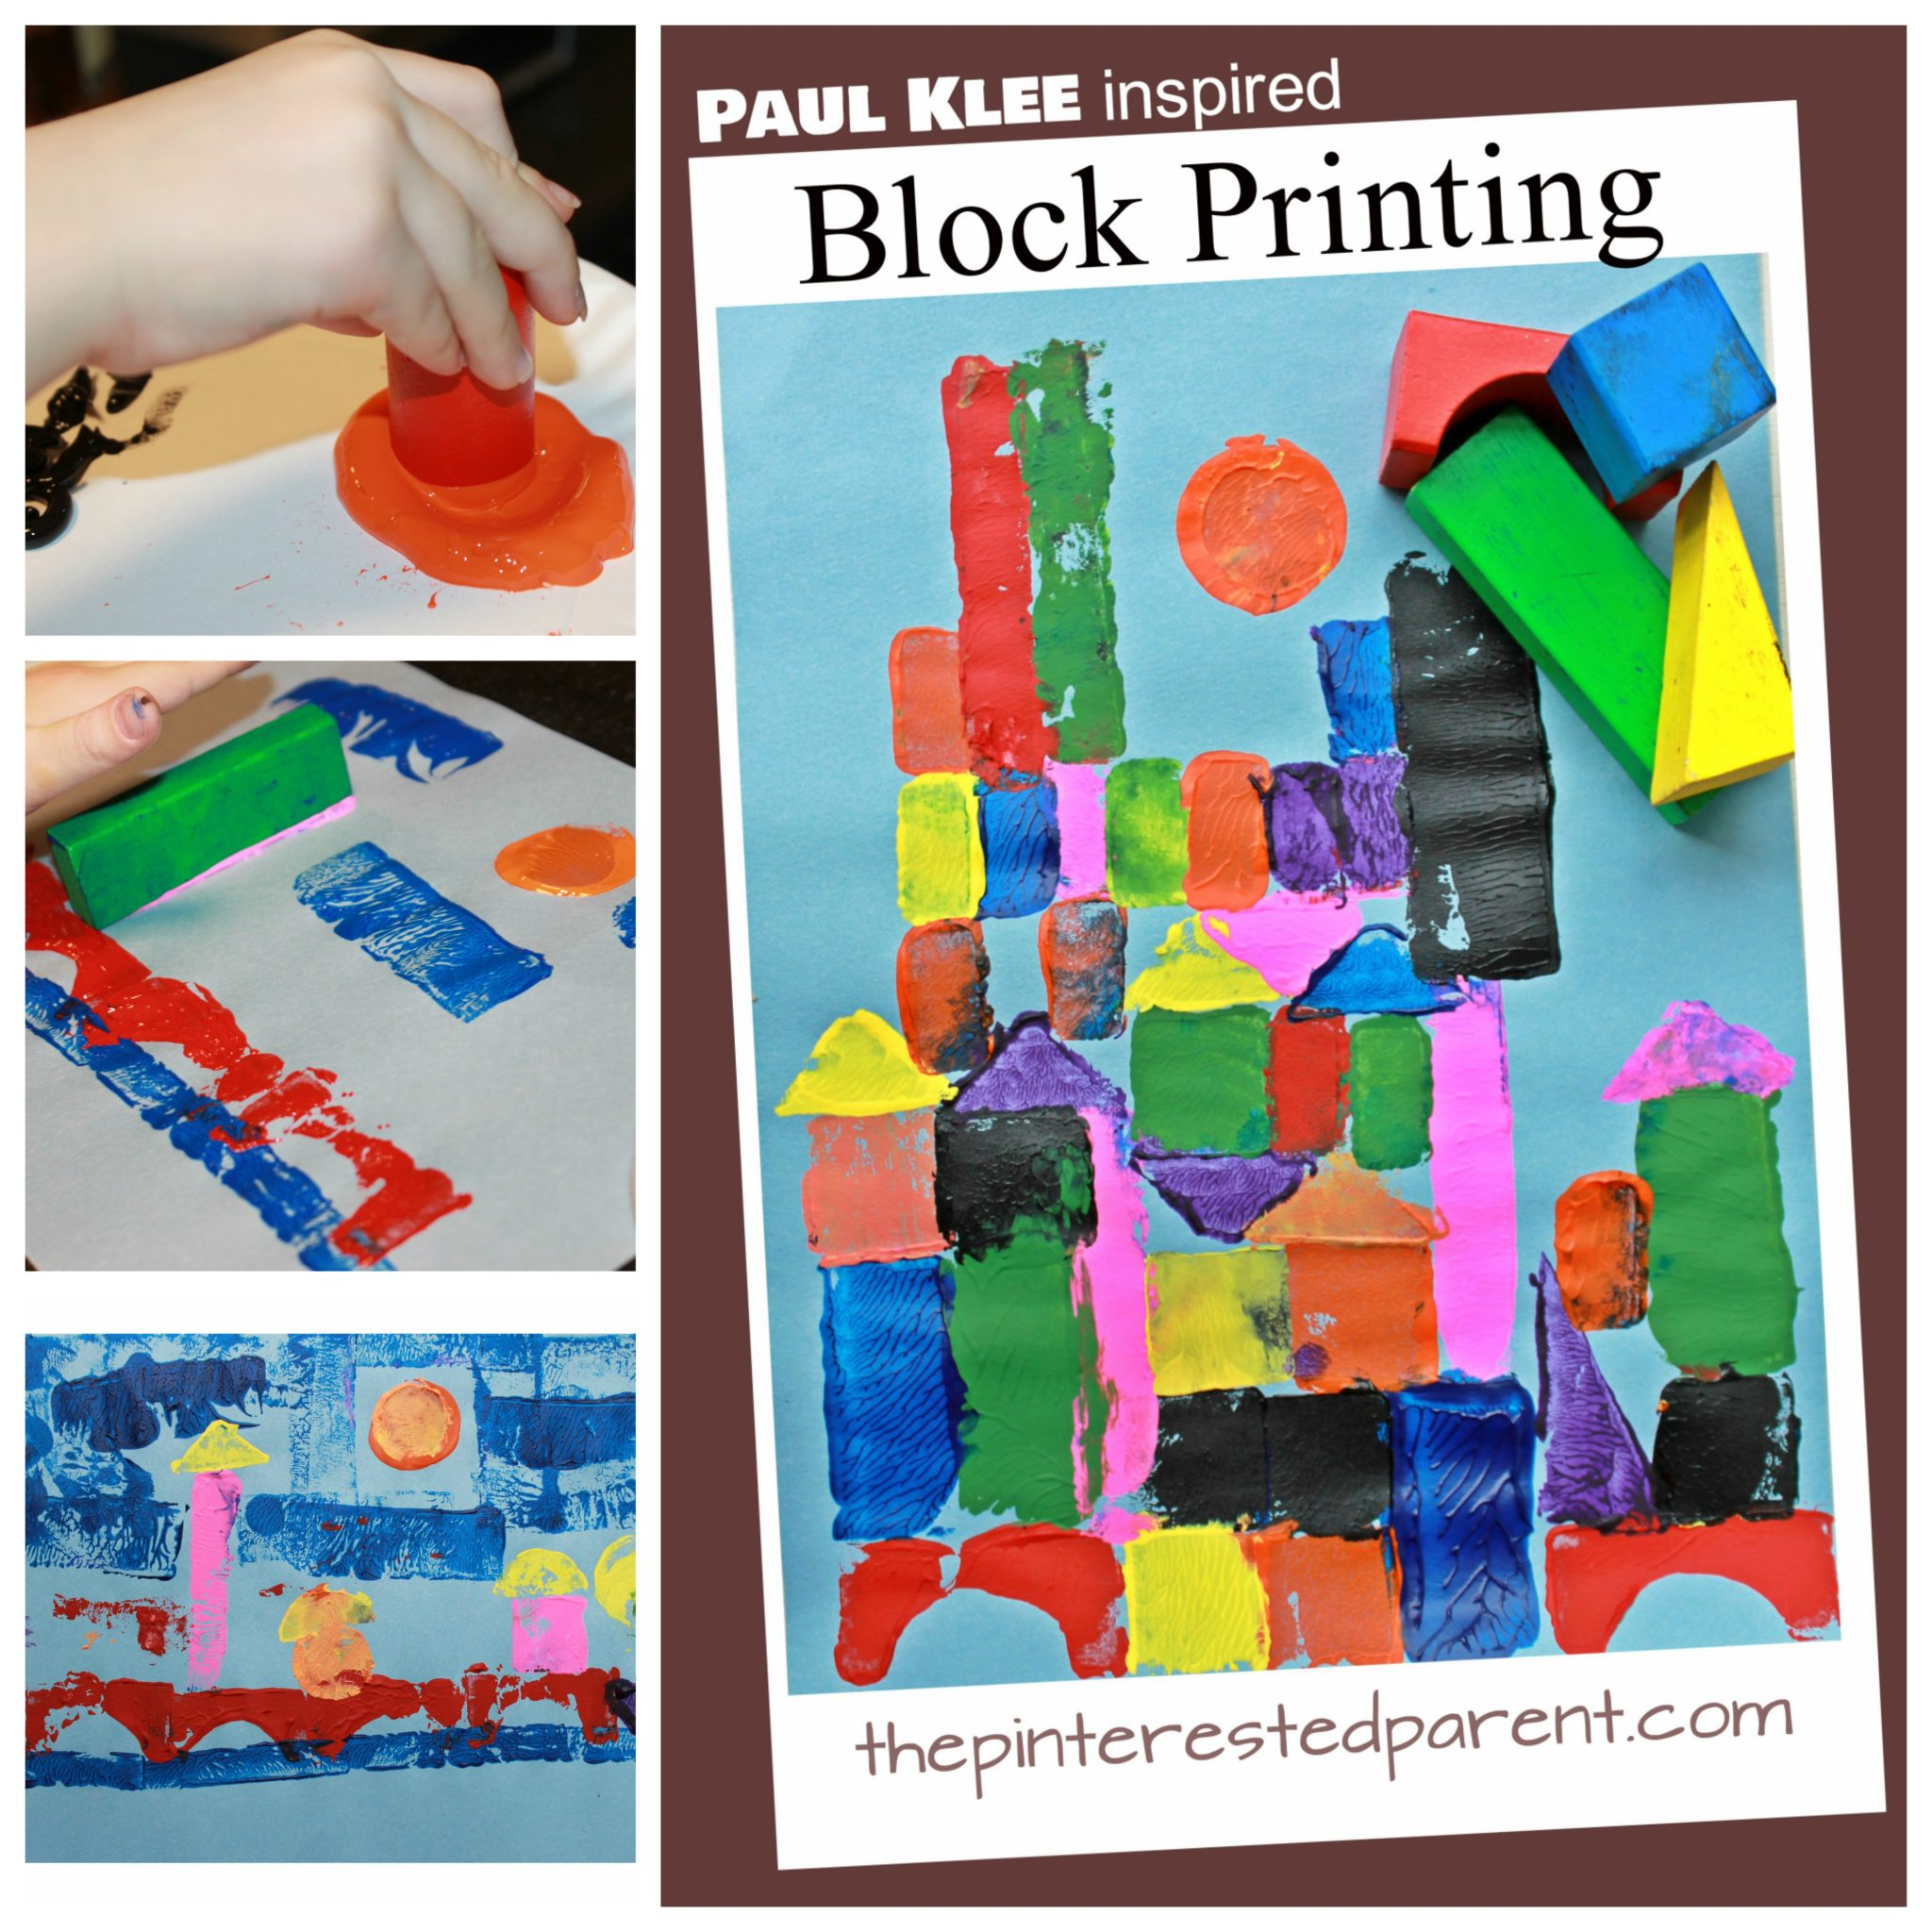 Paul Klee Inspired Block Printing – The Pinterested Parent